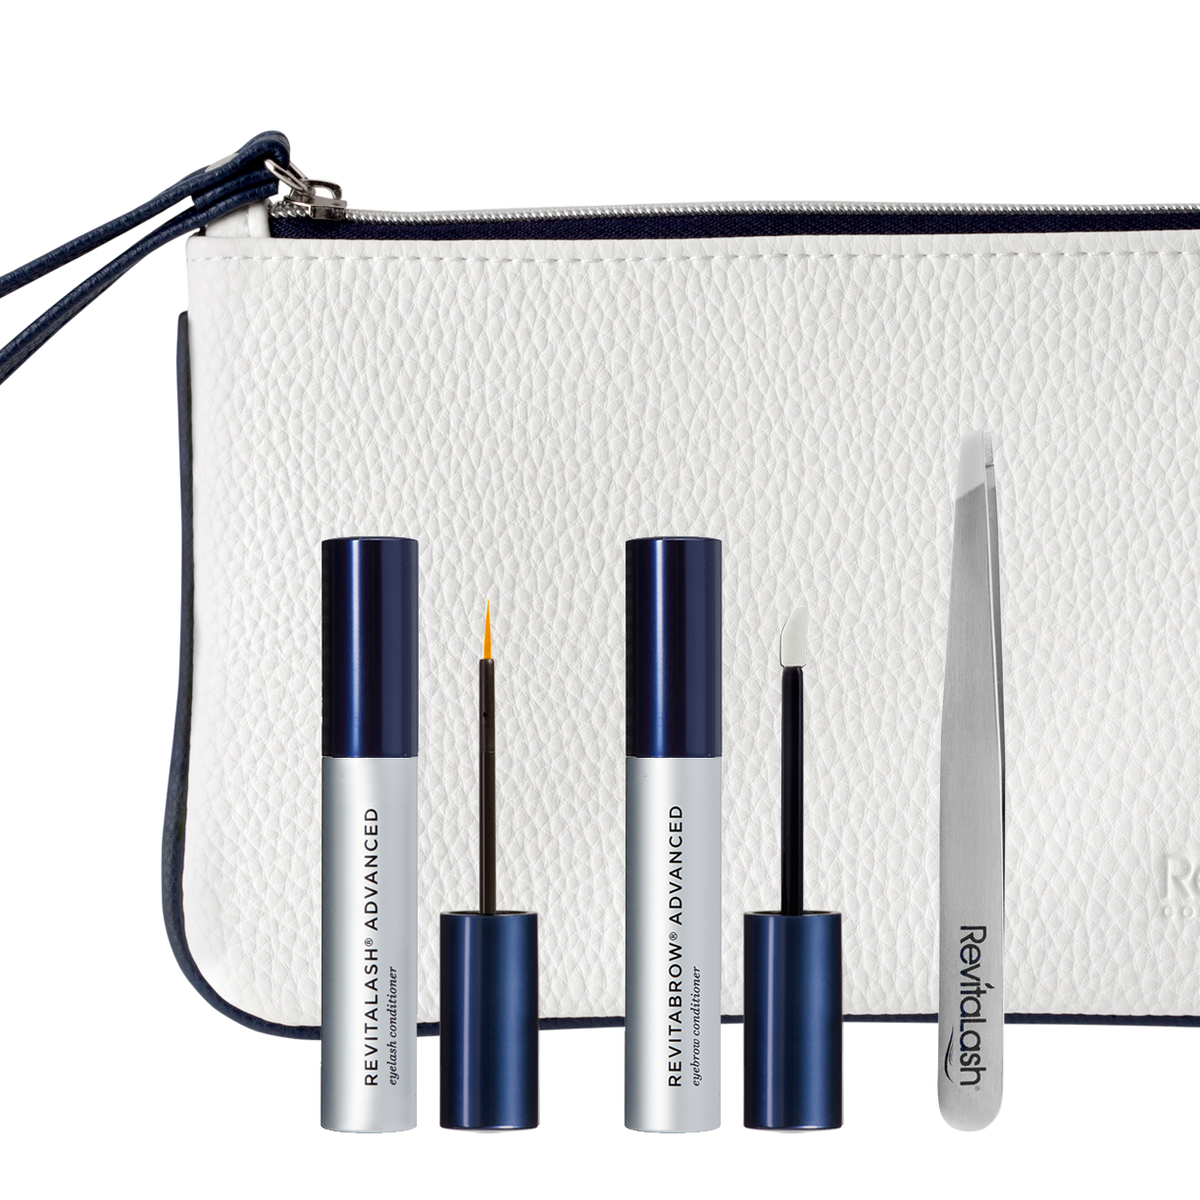 Image of RevitaLash Advanced 1 mL, RevitaBrow Advanced 1.5 mL, Tweezers and white cosmetic bag